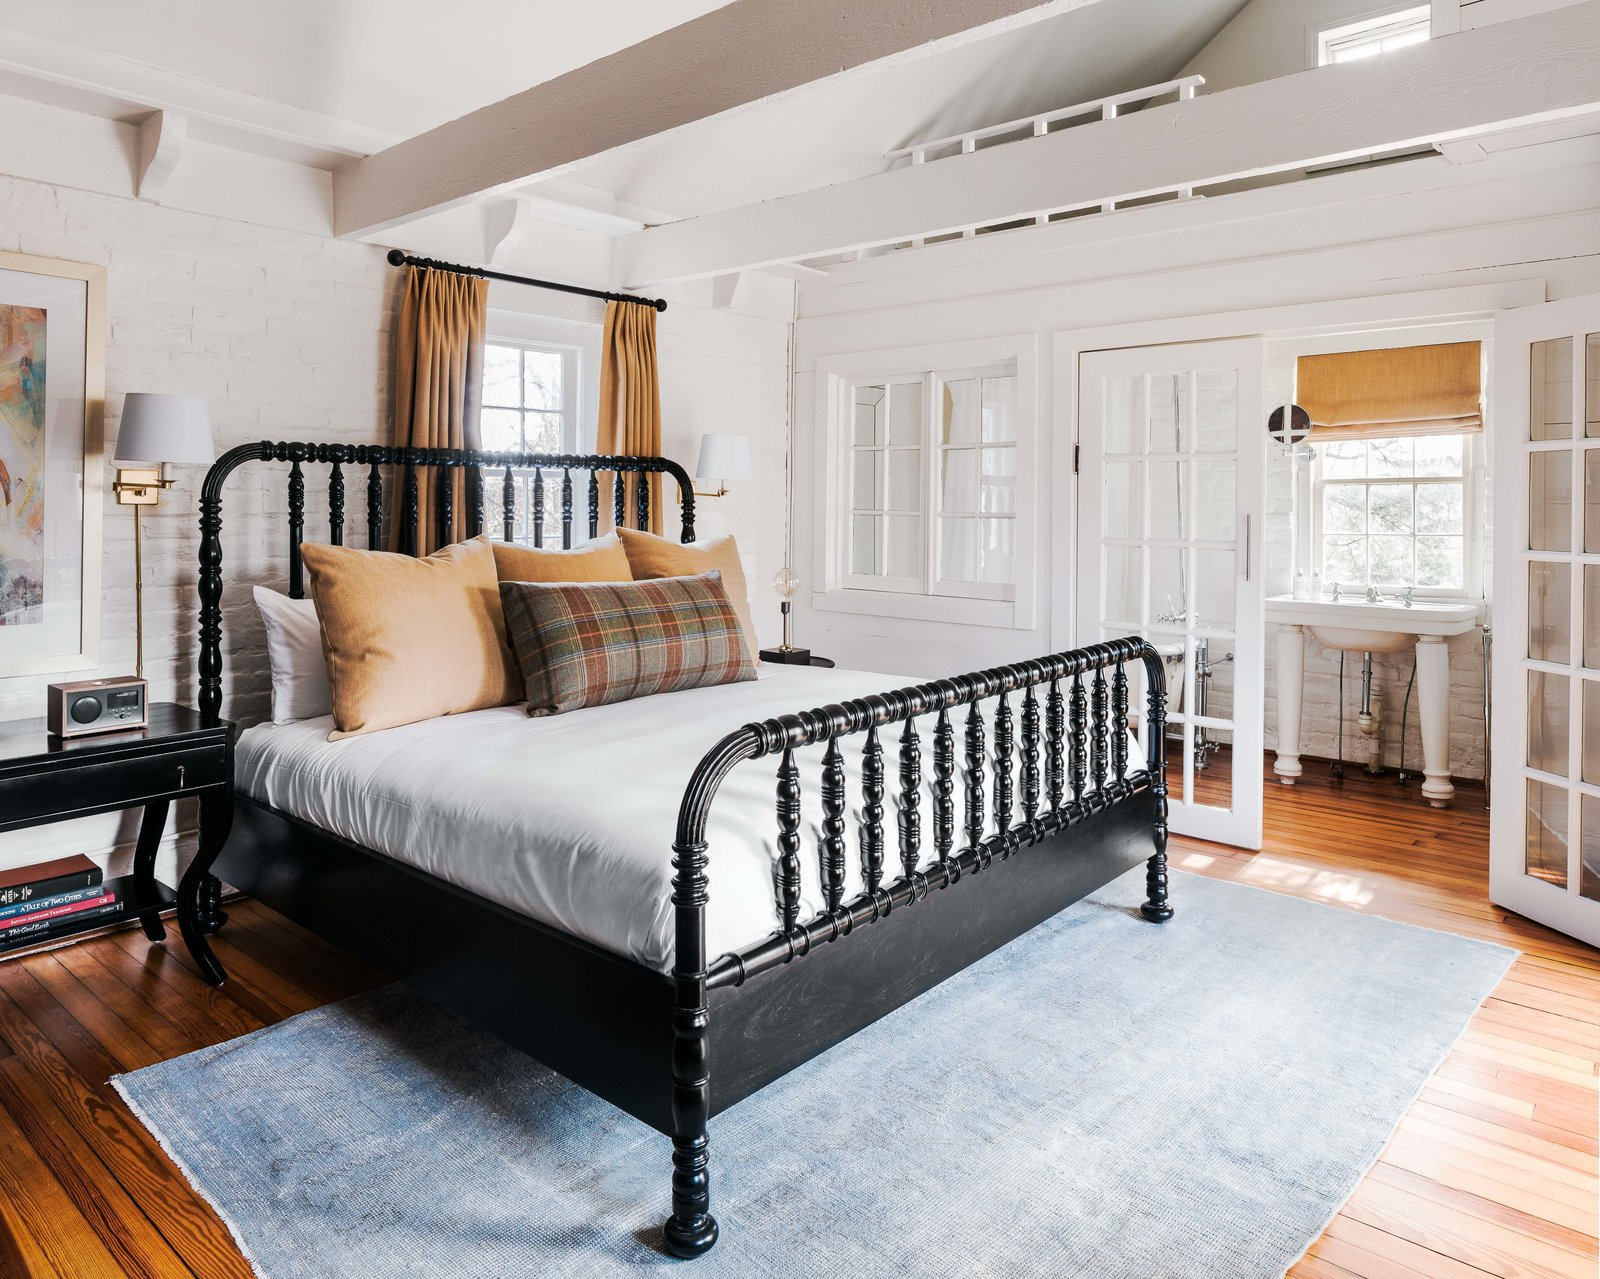 Bedroom, Wall Lighting, Night Stands, Bed, Medium Hardwood Floor, and Rug Floor Inside the cottage are two bedrooms that have been updated with crisp white paint, new linens, and light fixtures.  Photo 14 of 17 in The Clifton by Dwell from An 18th-Century Virginian Hotel Boasts an Elegant New Look